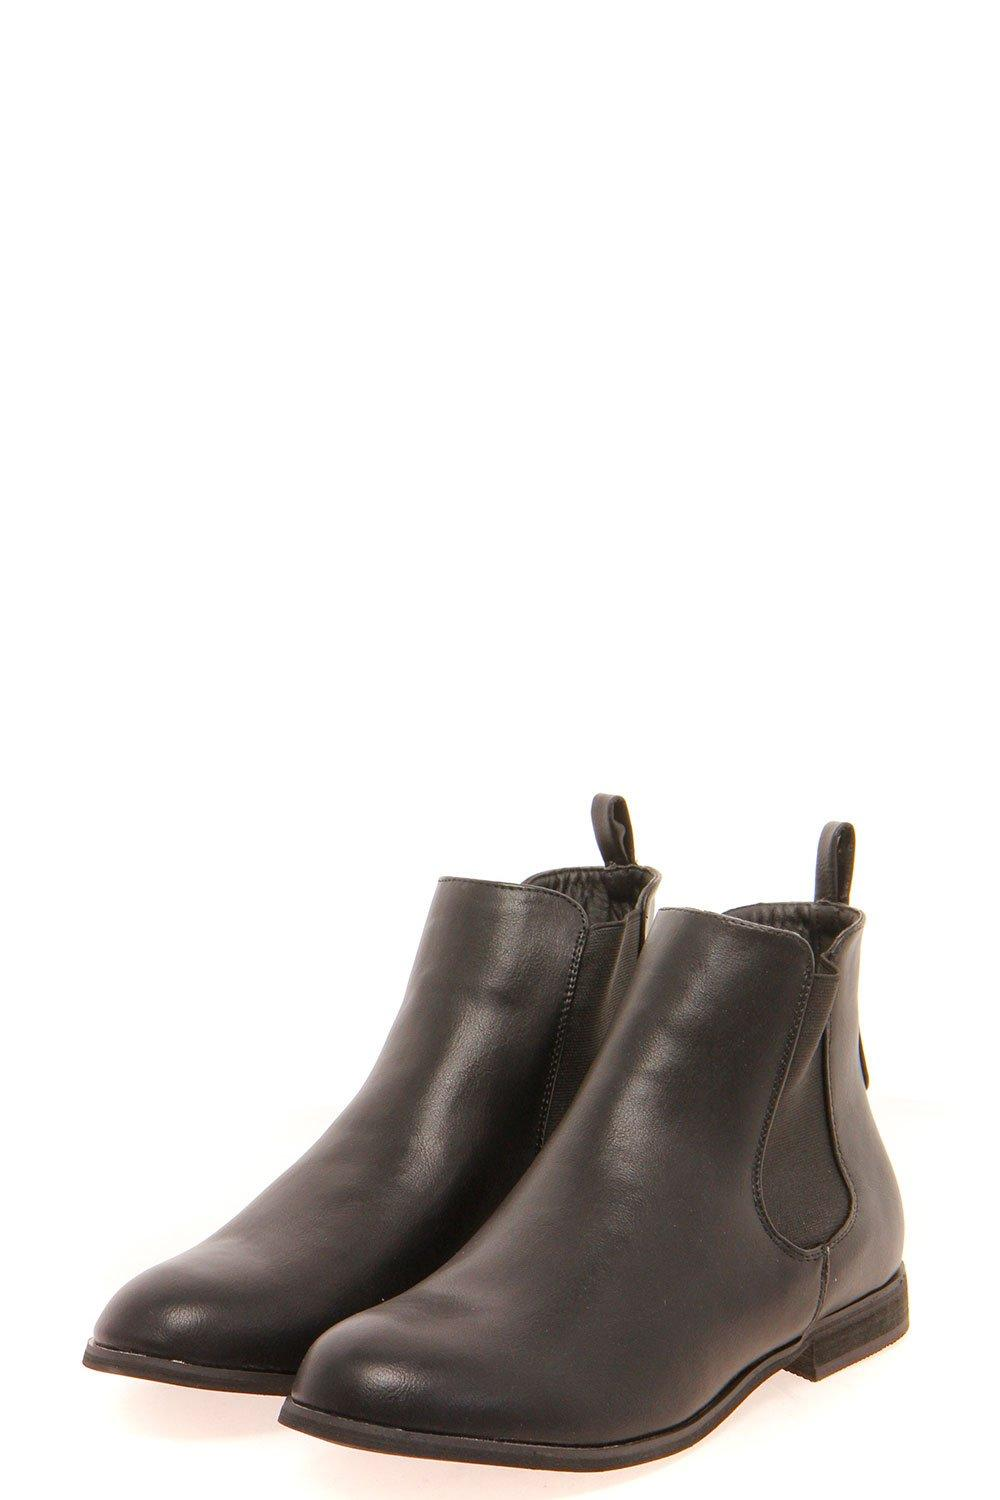 Wonderful UGG Womenu0026#39;s Joey Flat Chelsea Boots - Chestnut | FREE UK Delivery | Allsole